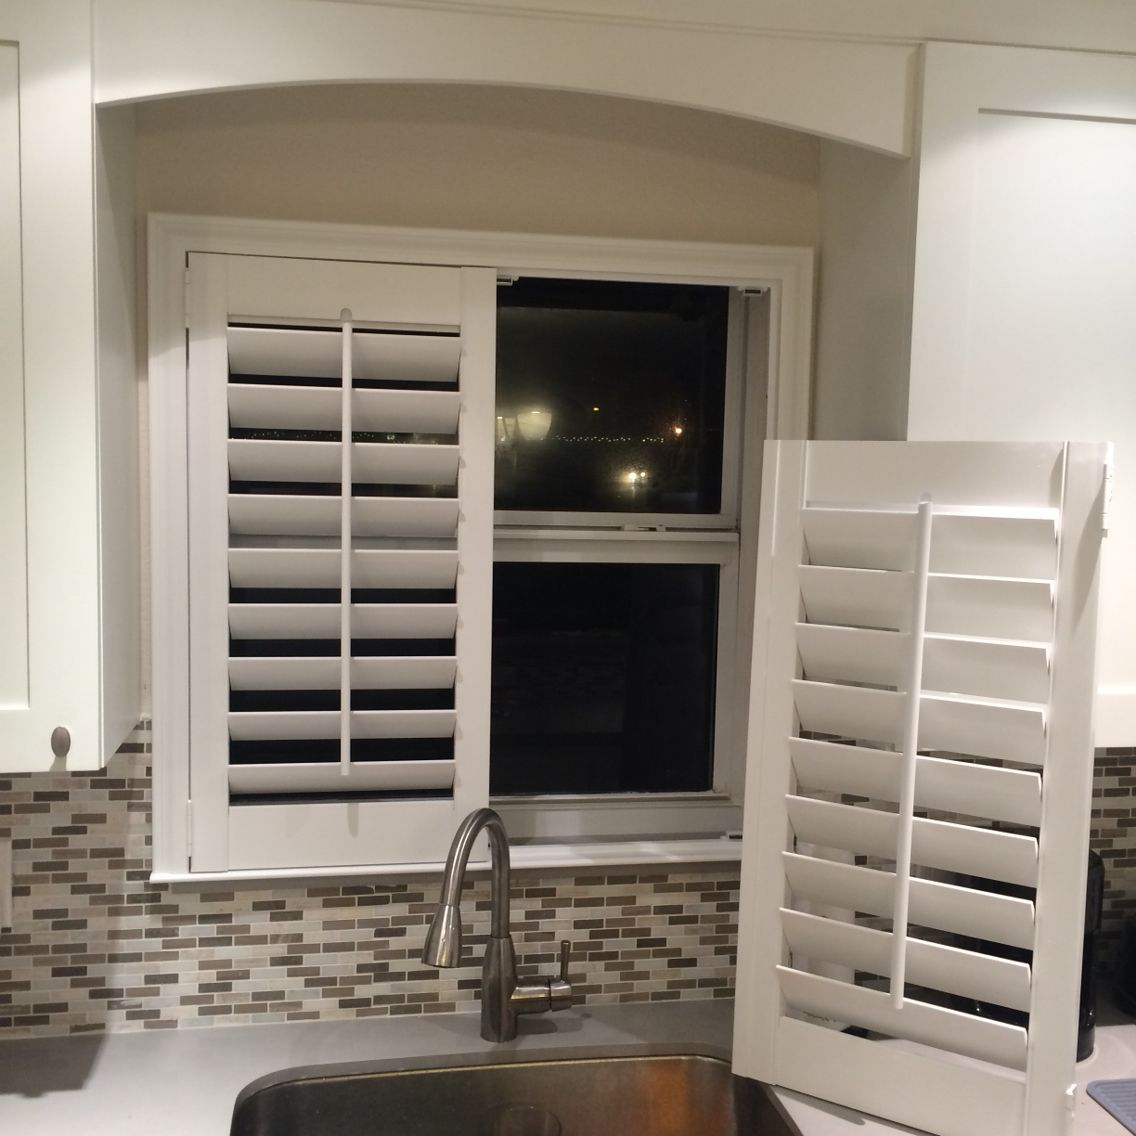 Kitchen Window Coverings: Think You Can't Put Plantation Shutters Over Your Kitchen